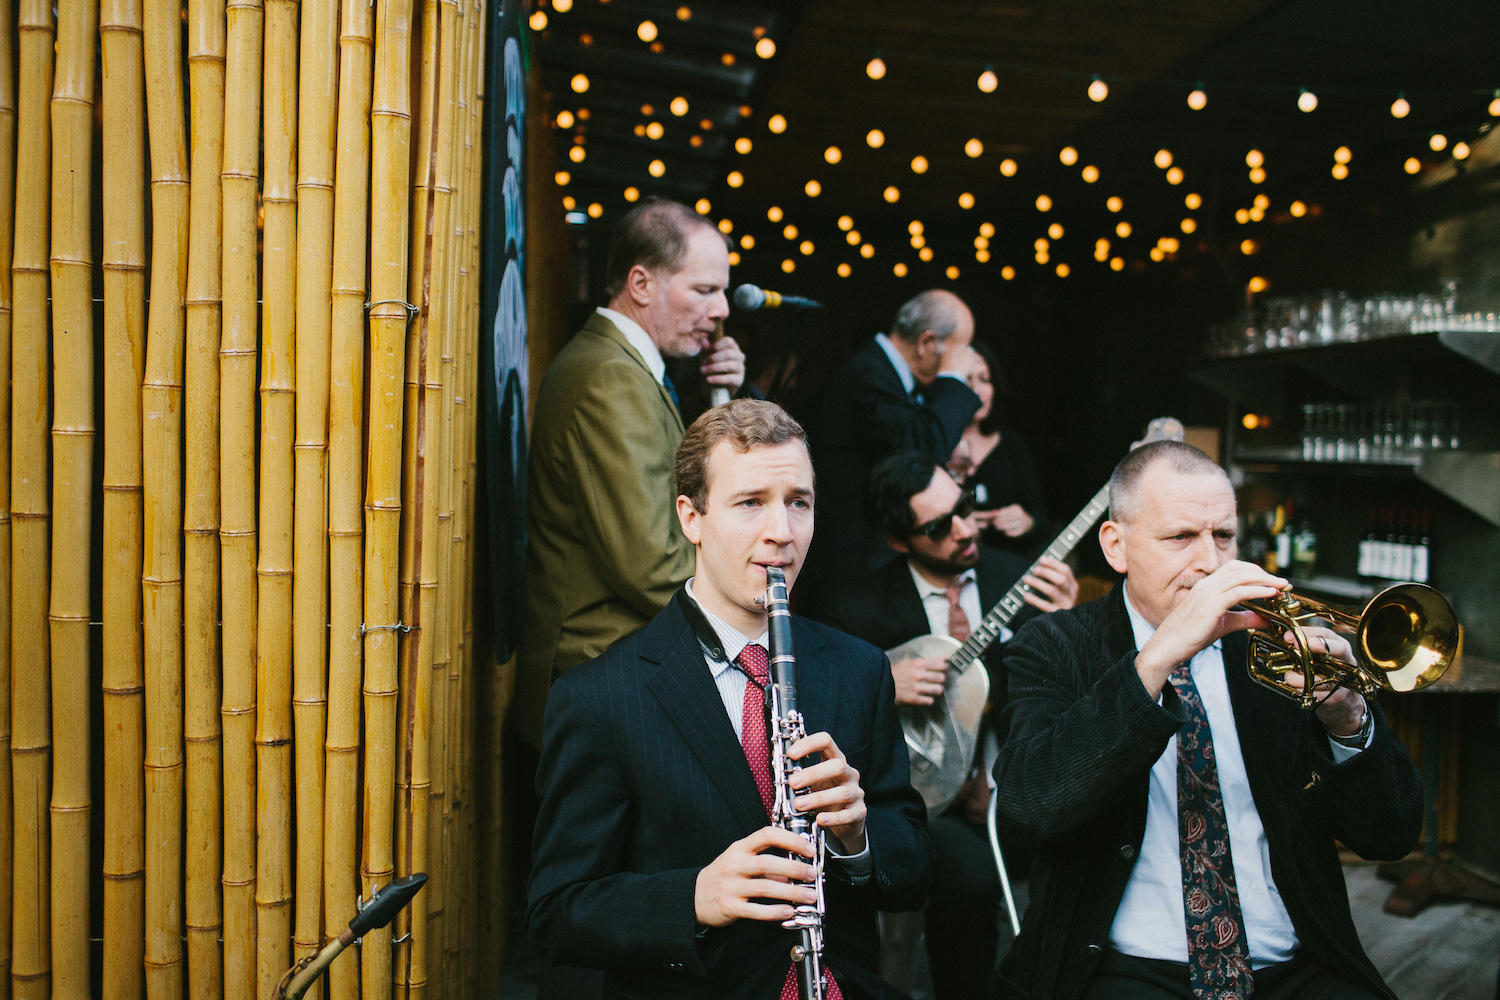 Full Aperture Floral & Corey Torpie Photography  - Brooklyn Wedding - 81.jpeg